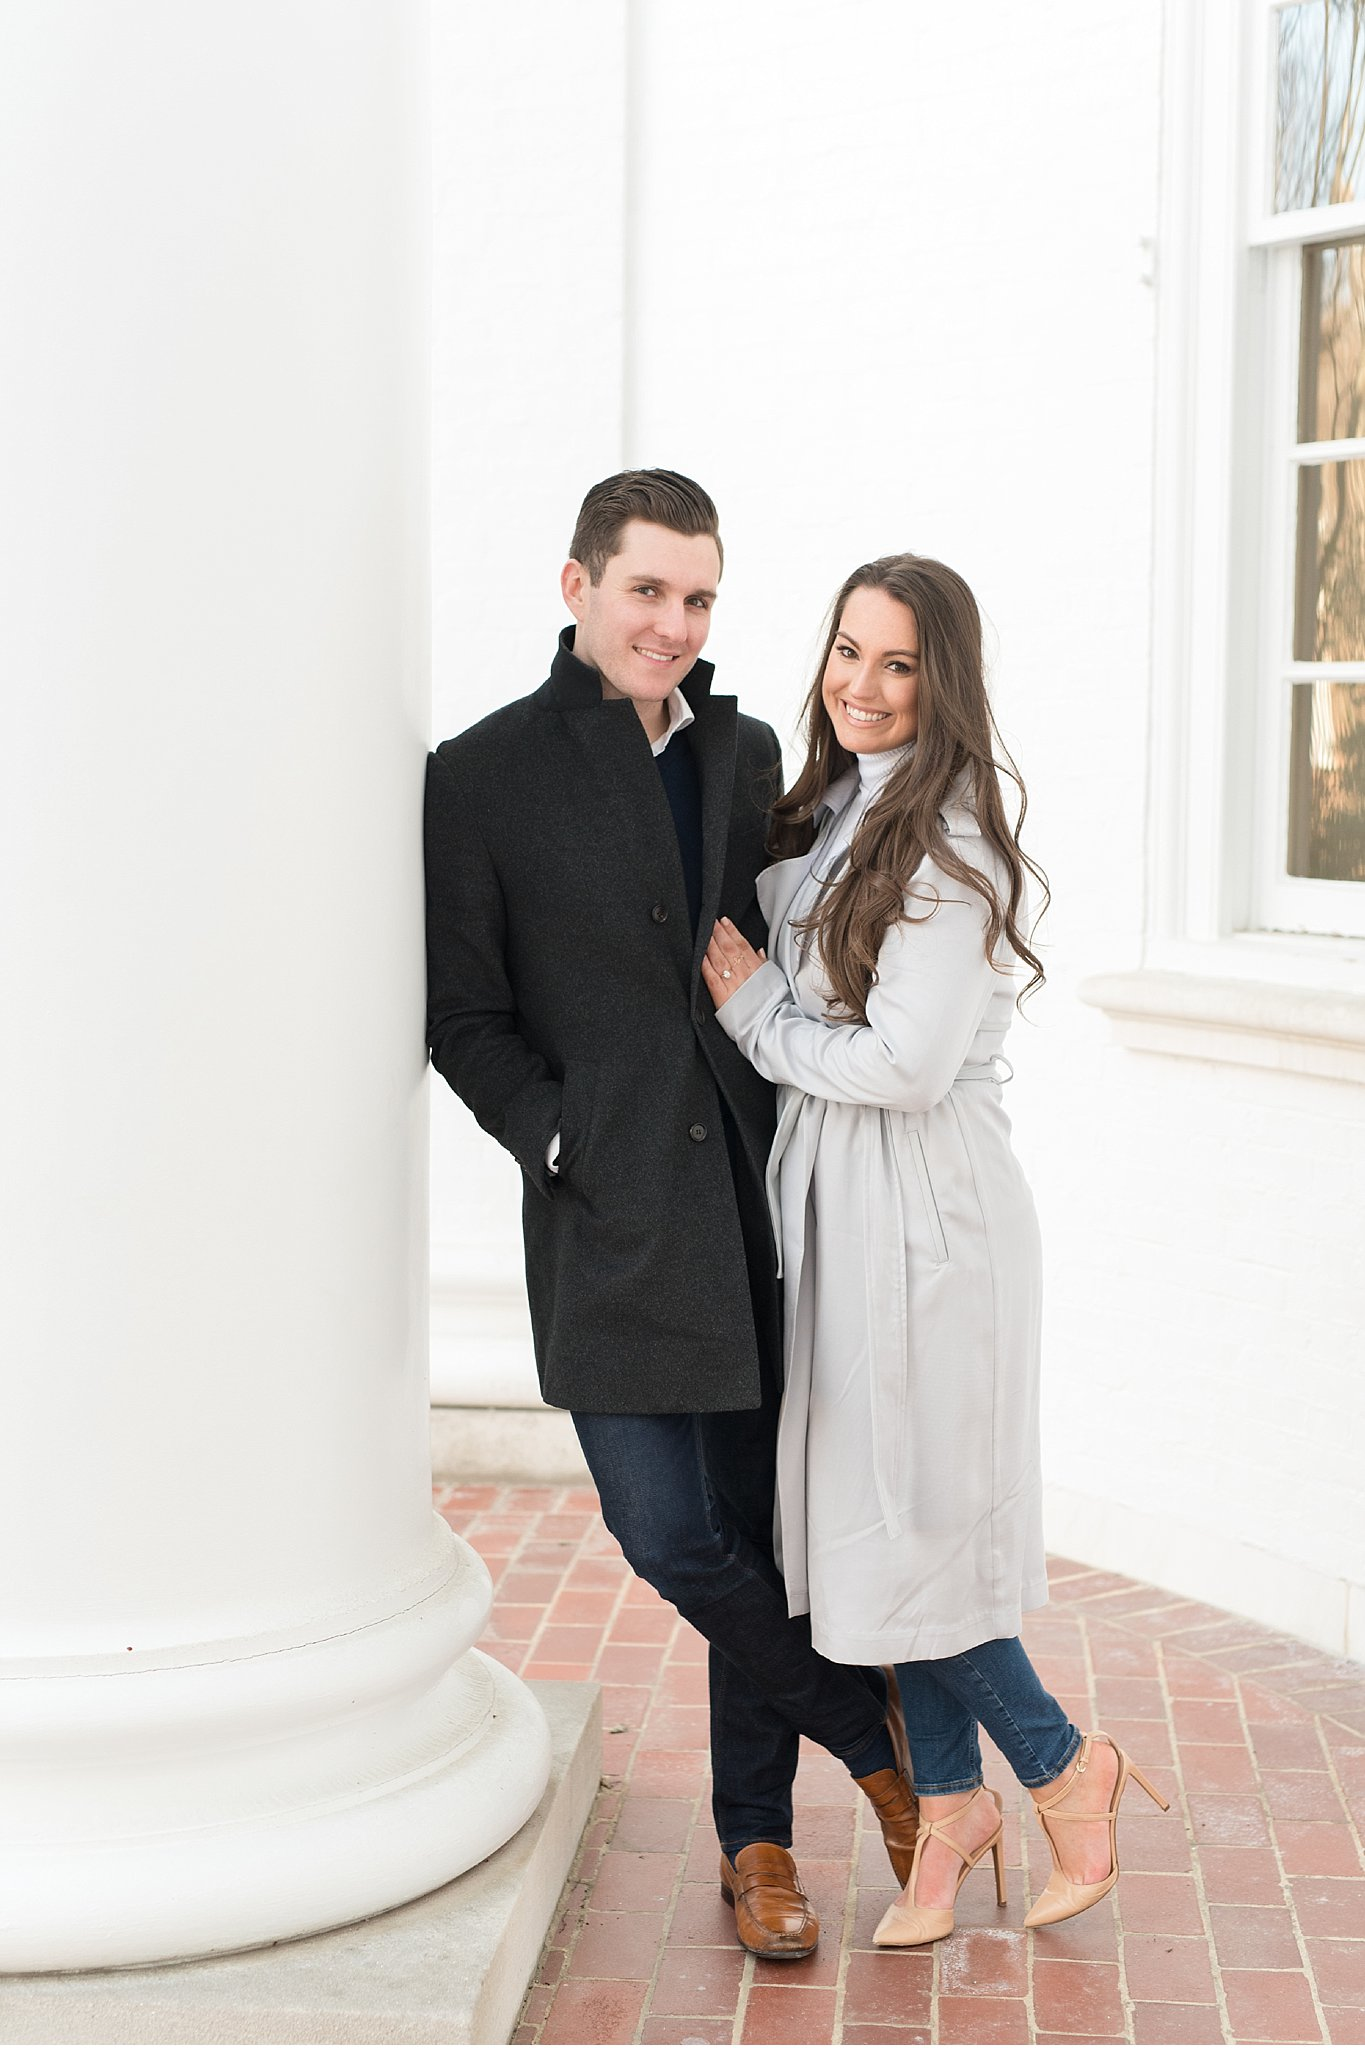 University of Delaware golden sun engagement session wedding photography photo